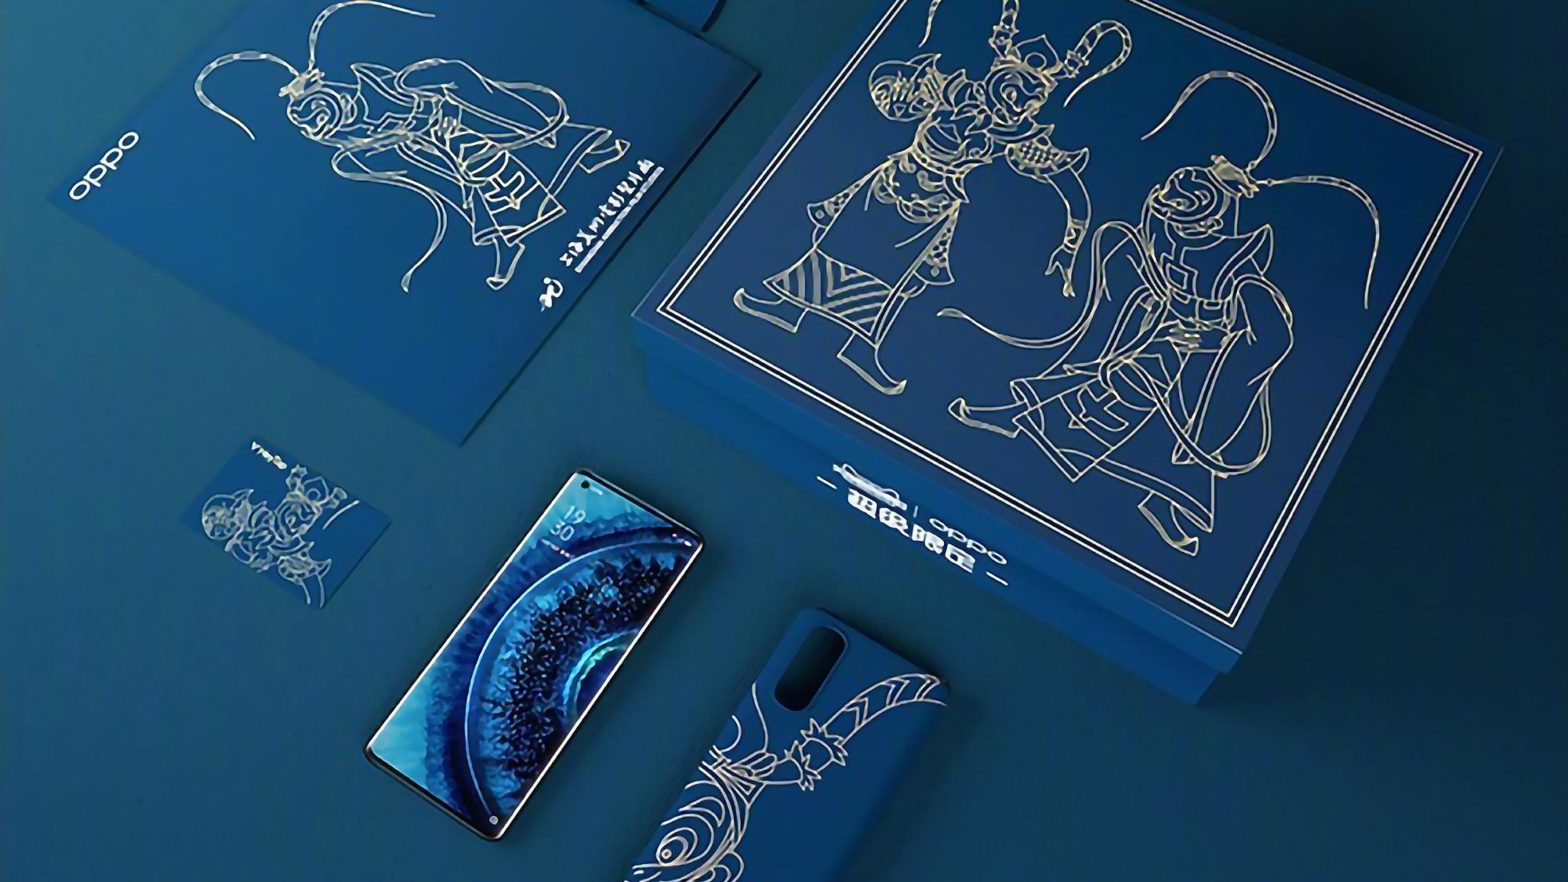 Oppo Find X2 Havoc In Heavenly Palace Edition